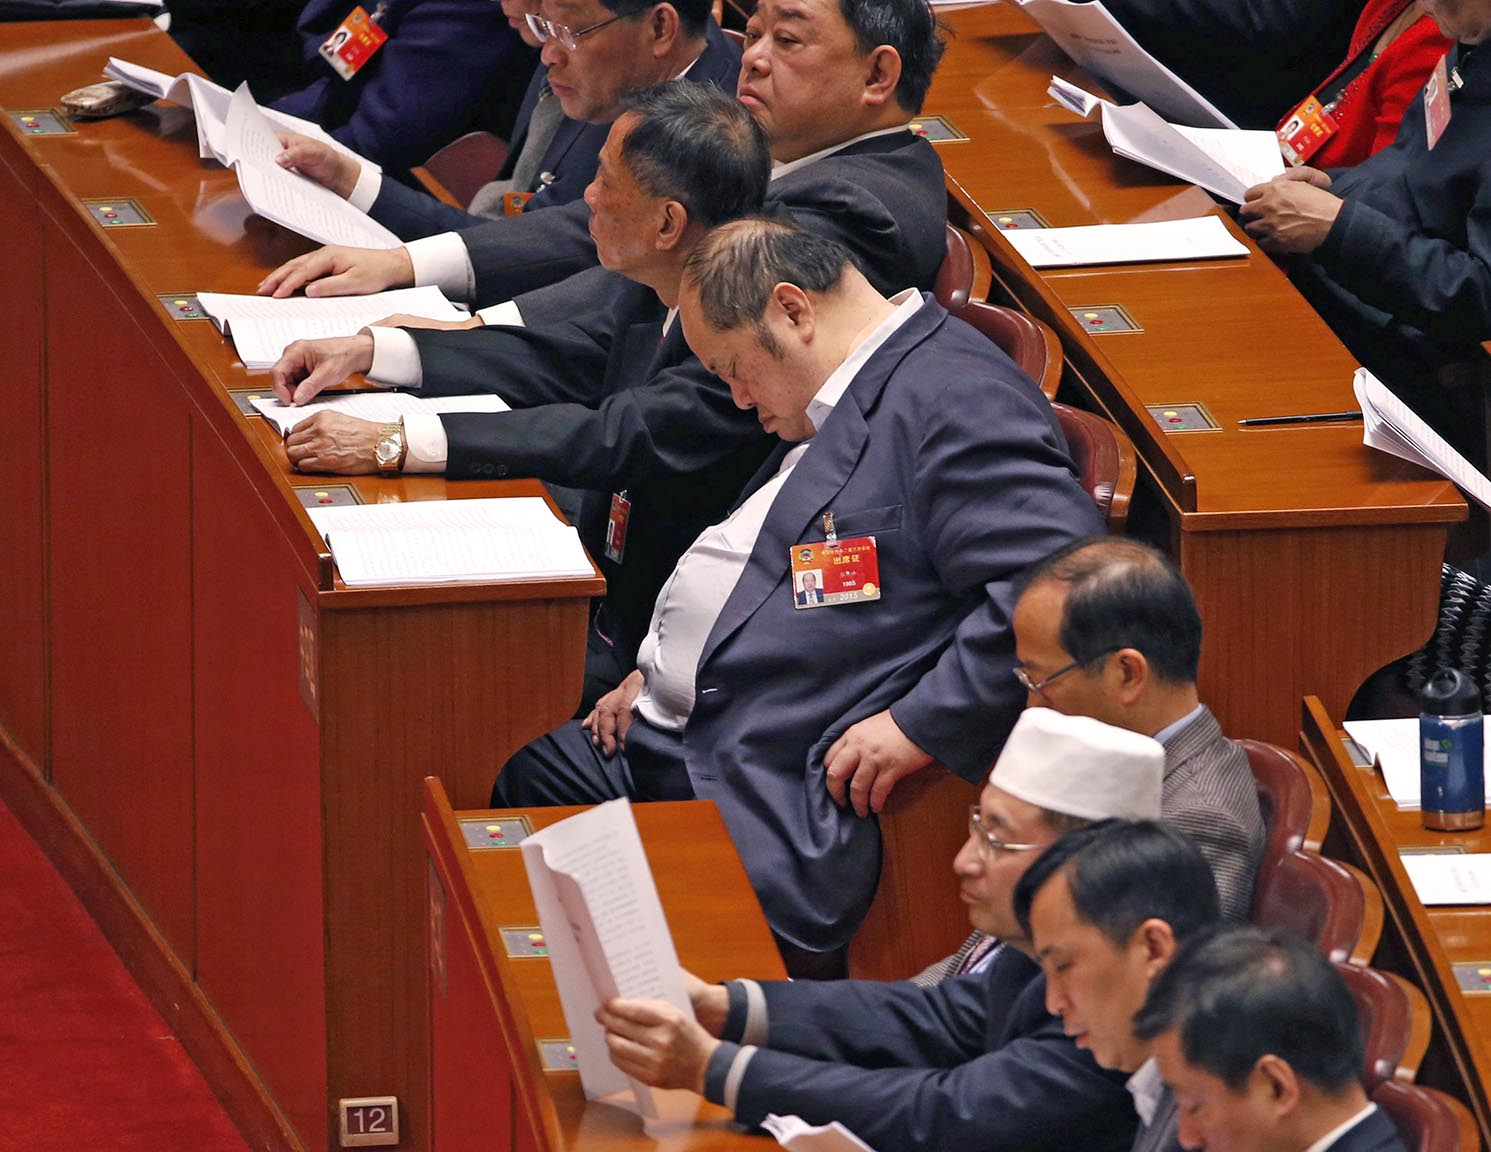 A delegate takes a nap during the third plenary meeting of Chinese People's Political Consultative Conference (CPPCC) at the Great Hall of the People in Beijing